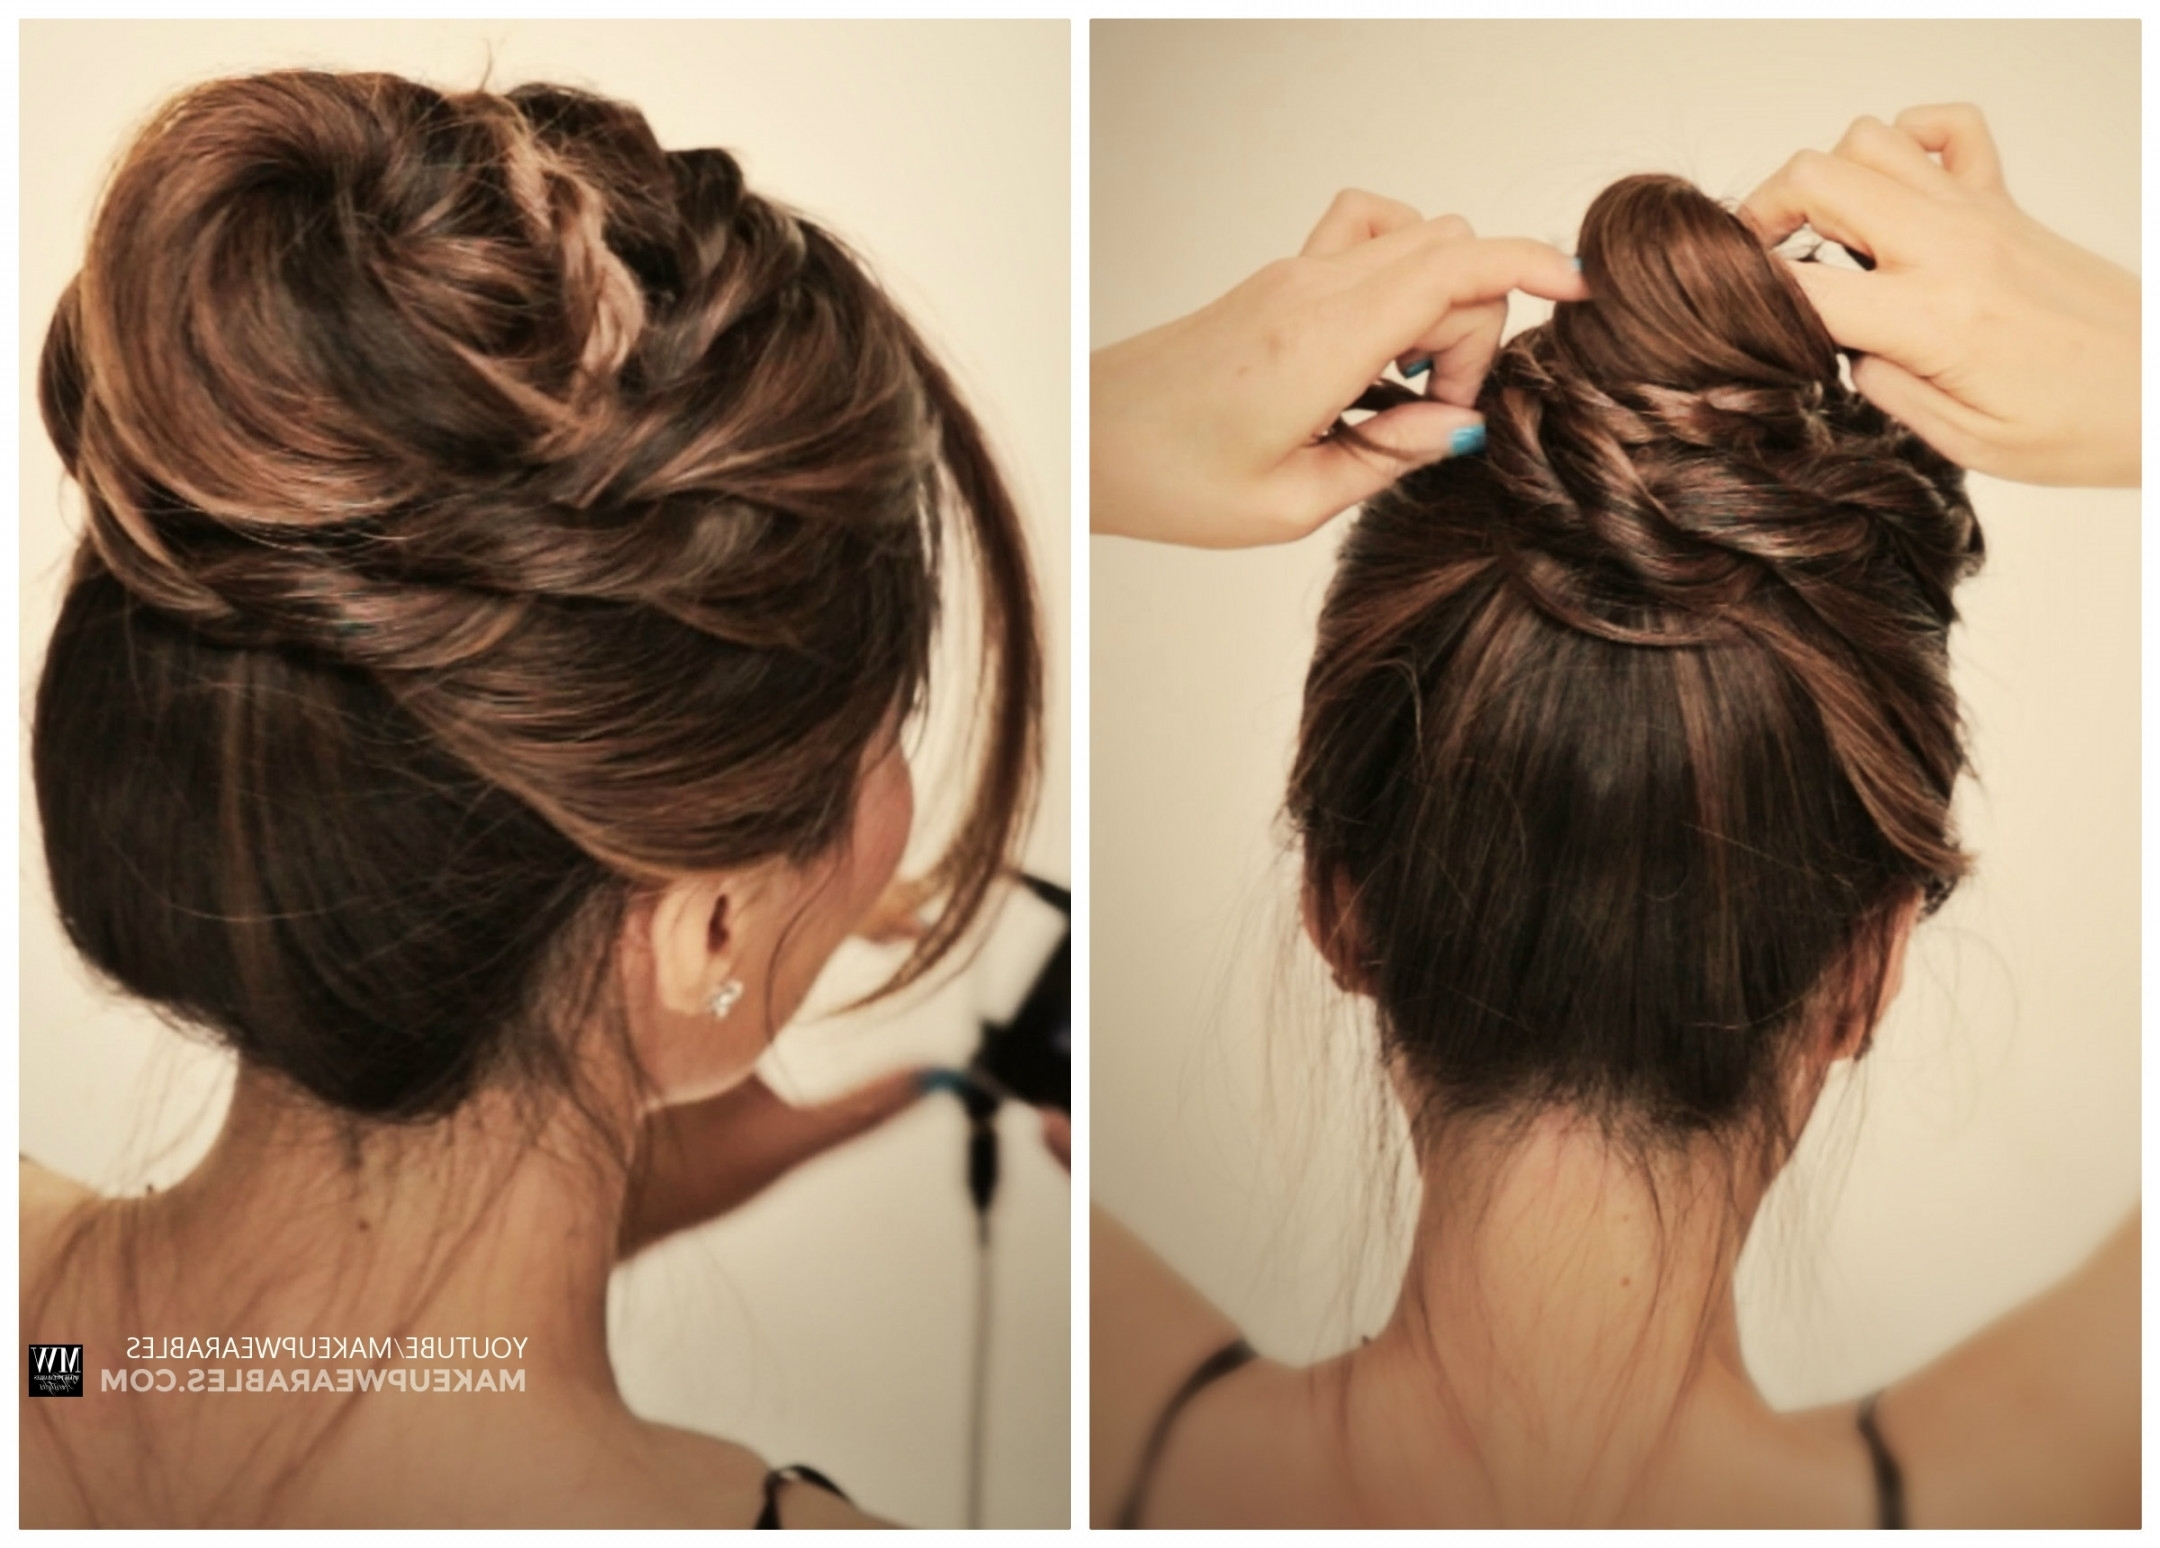 Cute Messy Bun Braids Ballerina Twisted Updo Hairstyle | Medium Throughout Messy Hair Updo Hairstyles For Long Hair (View 8 of 15)